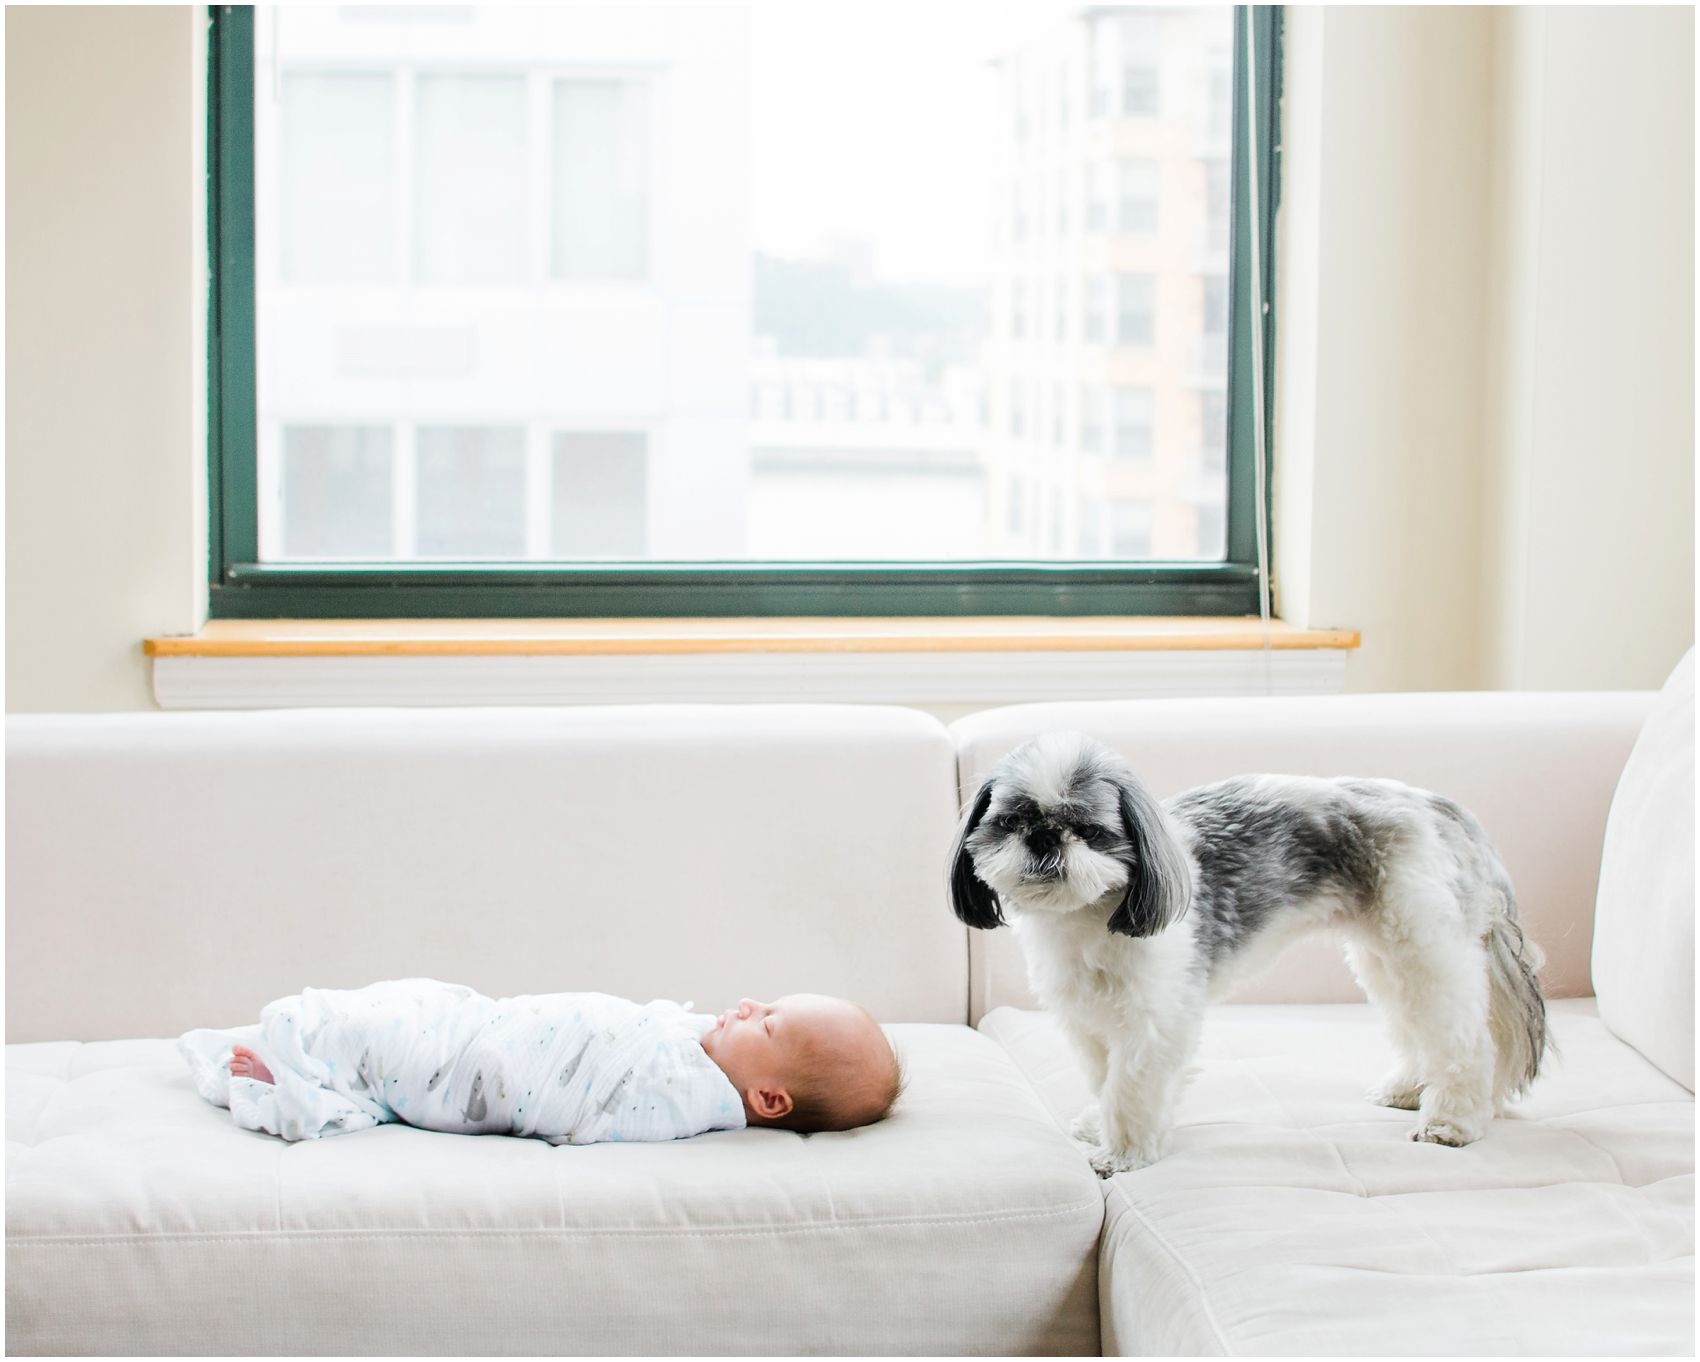 cute little dog is standing next to baby boy on a living room couch